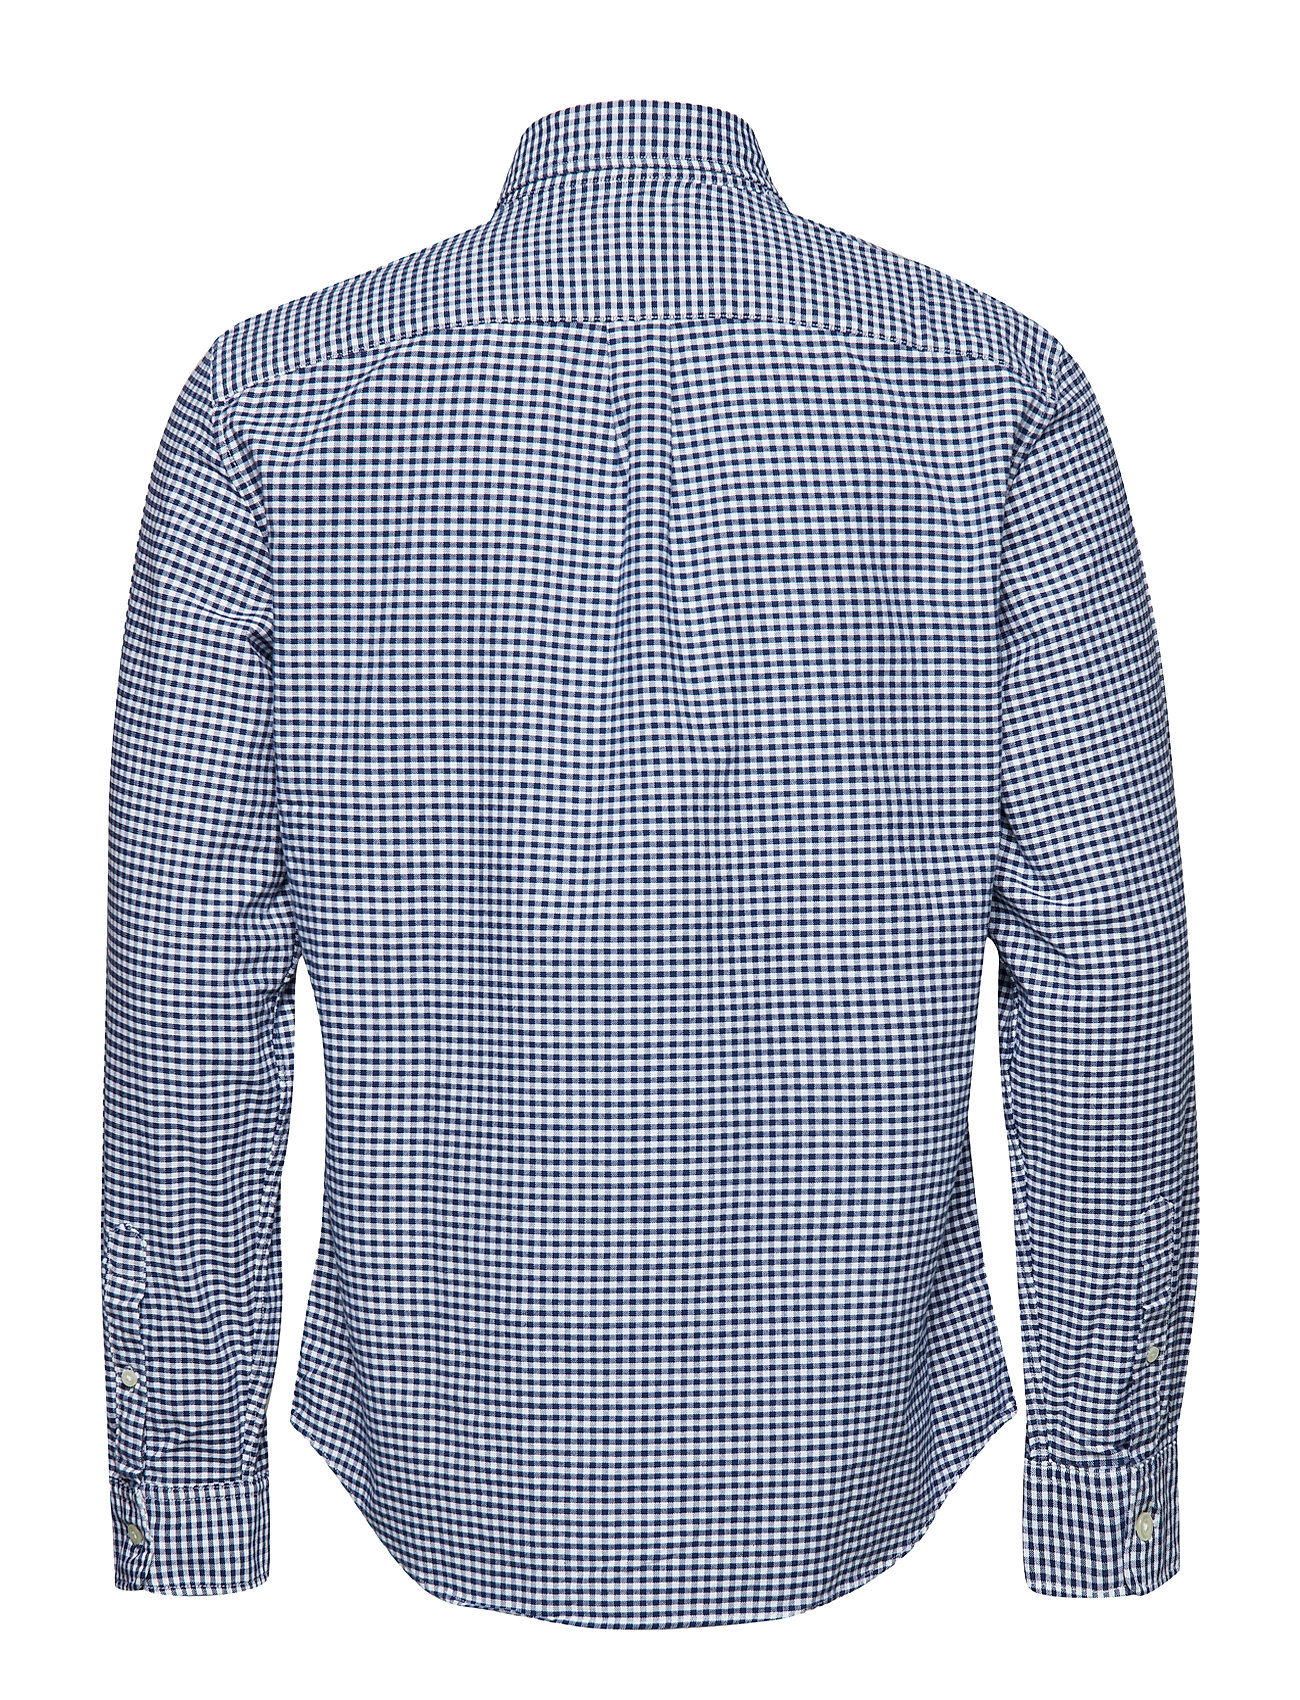 Oxford Shirtsblue Shirtsblue 685Gap Gingham Oxford Shirtsblue 685Gap Gingham Gingham Shirtsblue Oxford 685Gap Oxford m8vwNn0